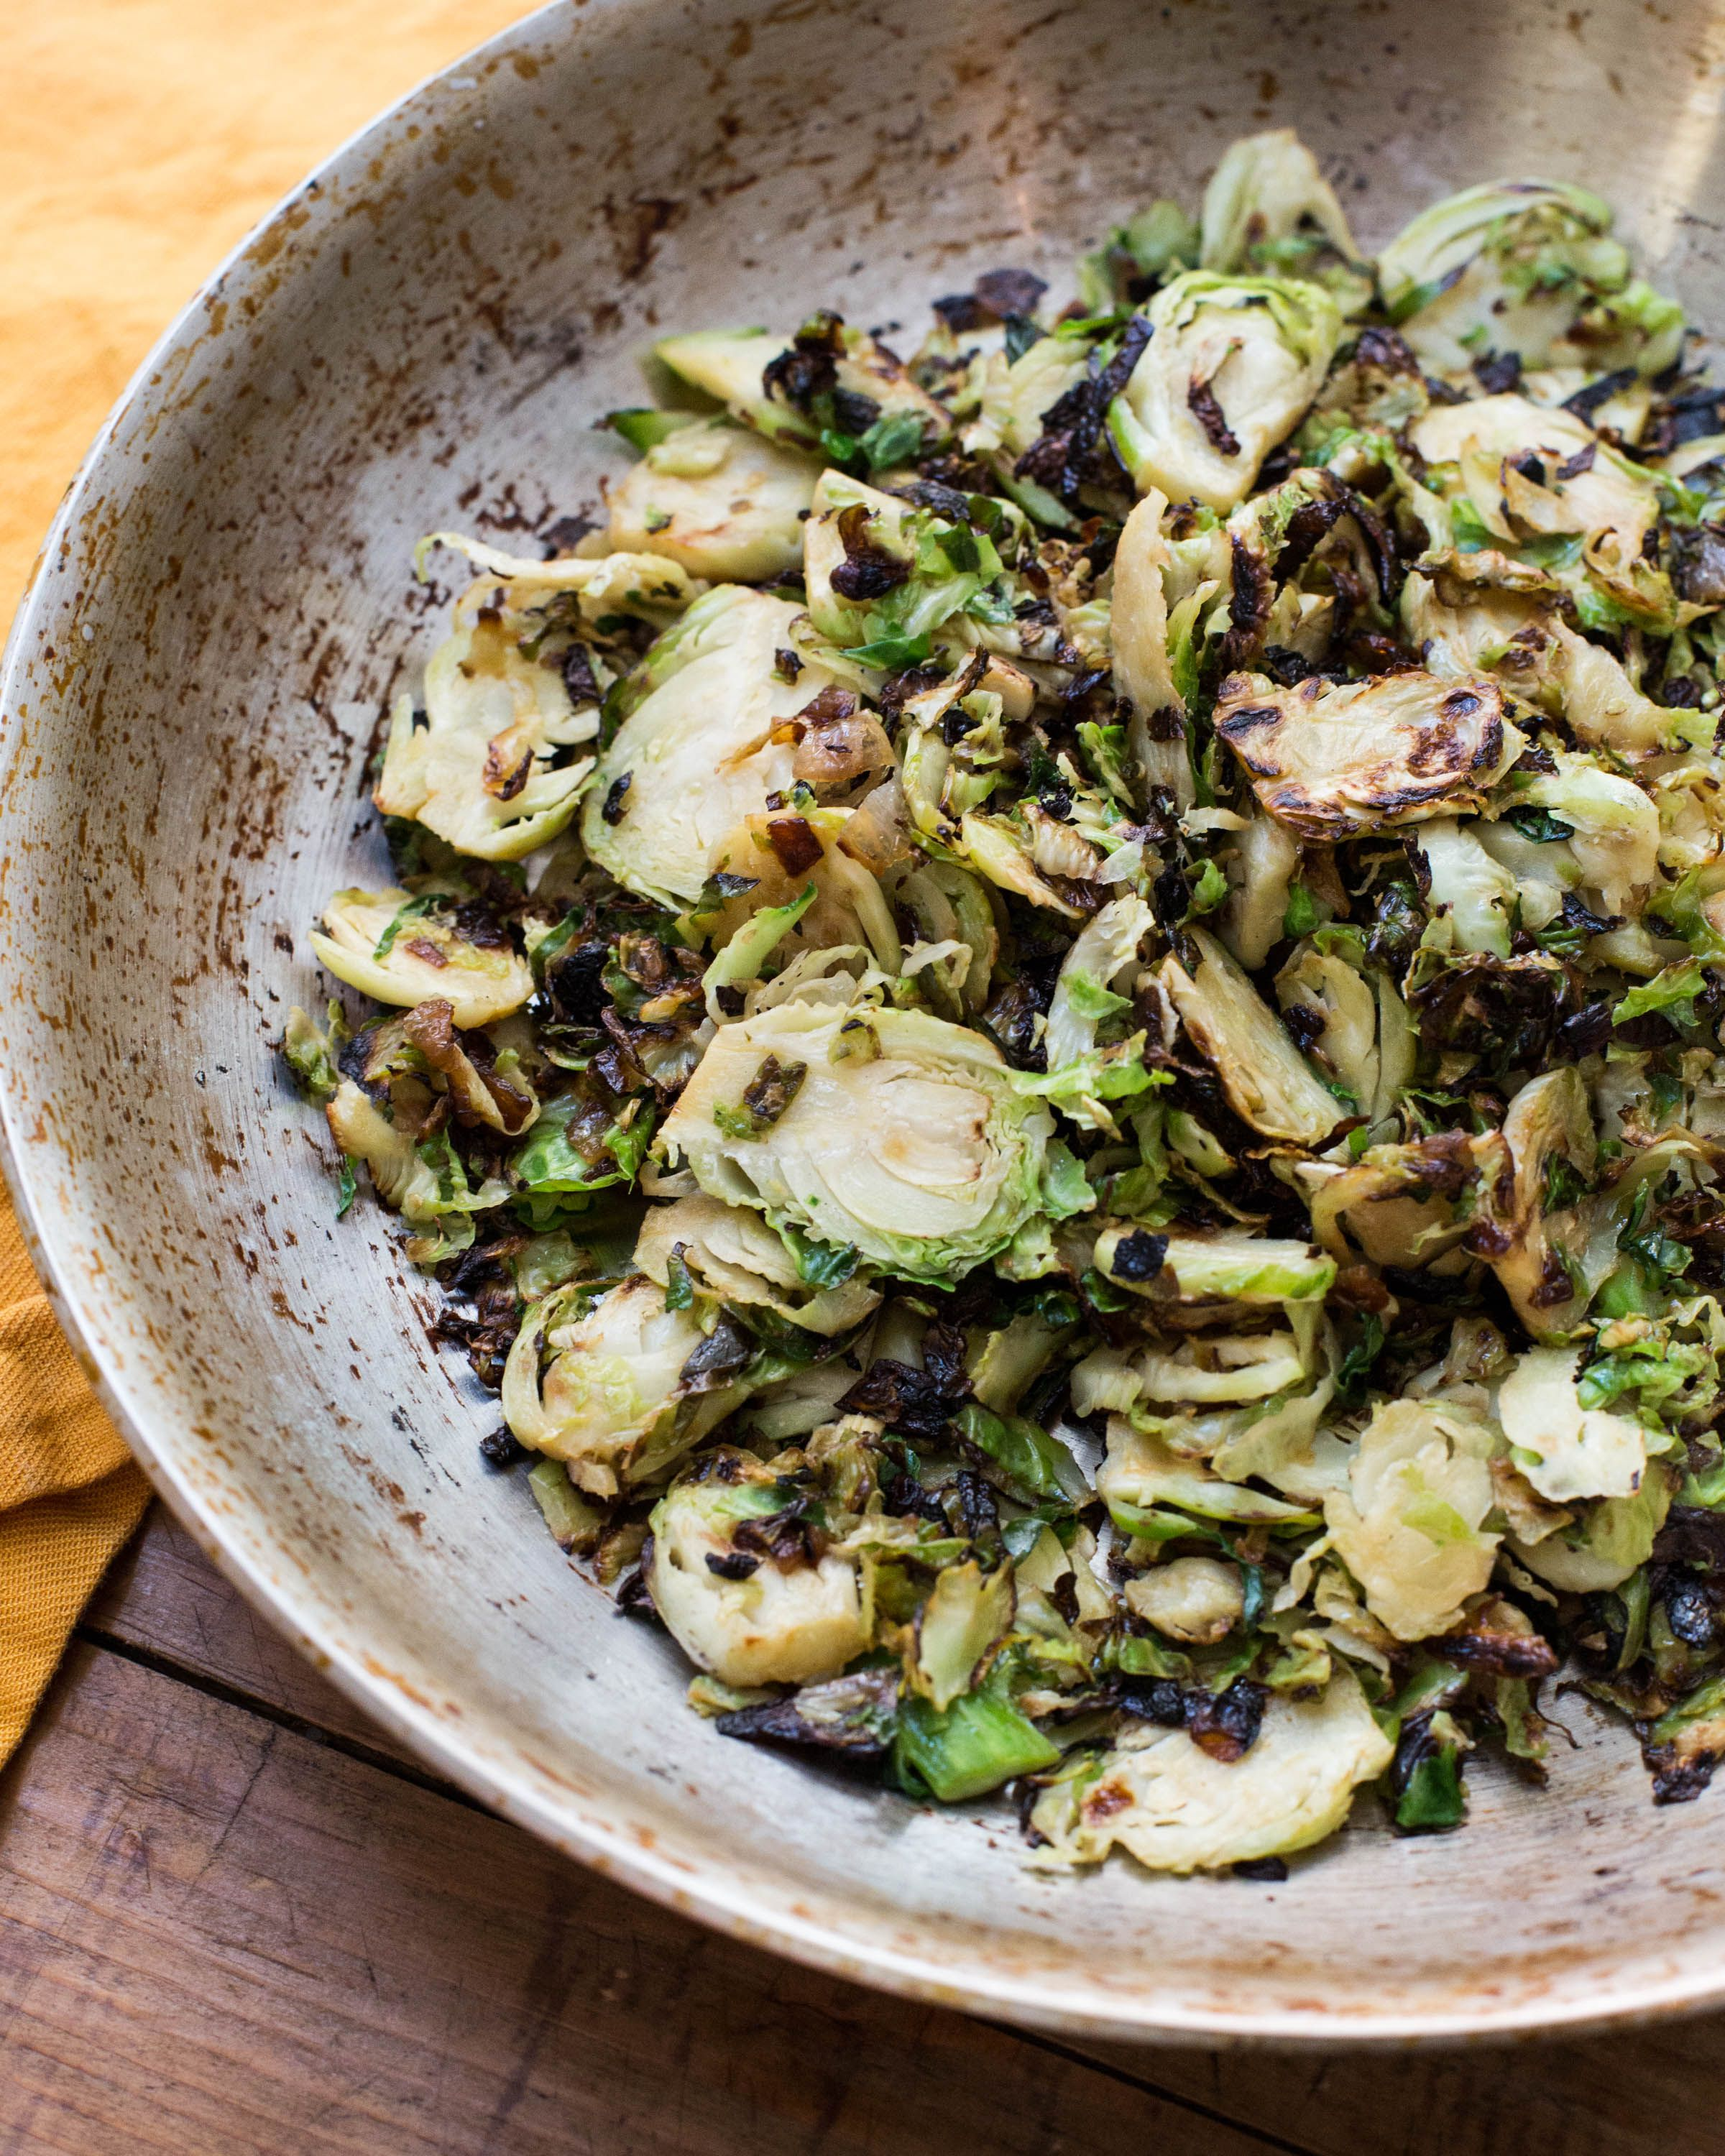 Sautéed Brussels sprouts with onions